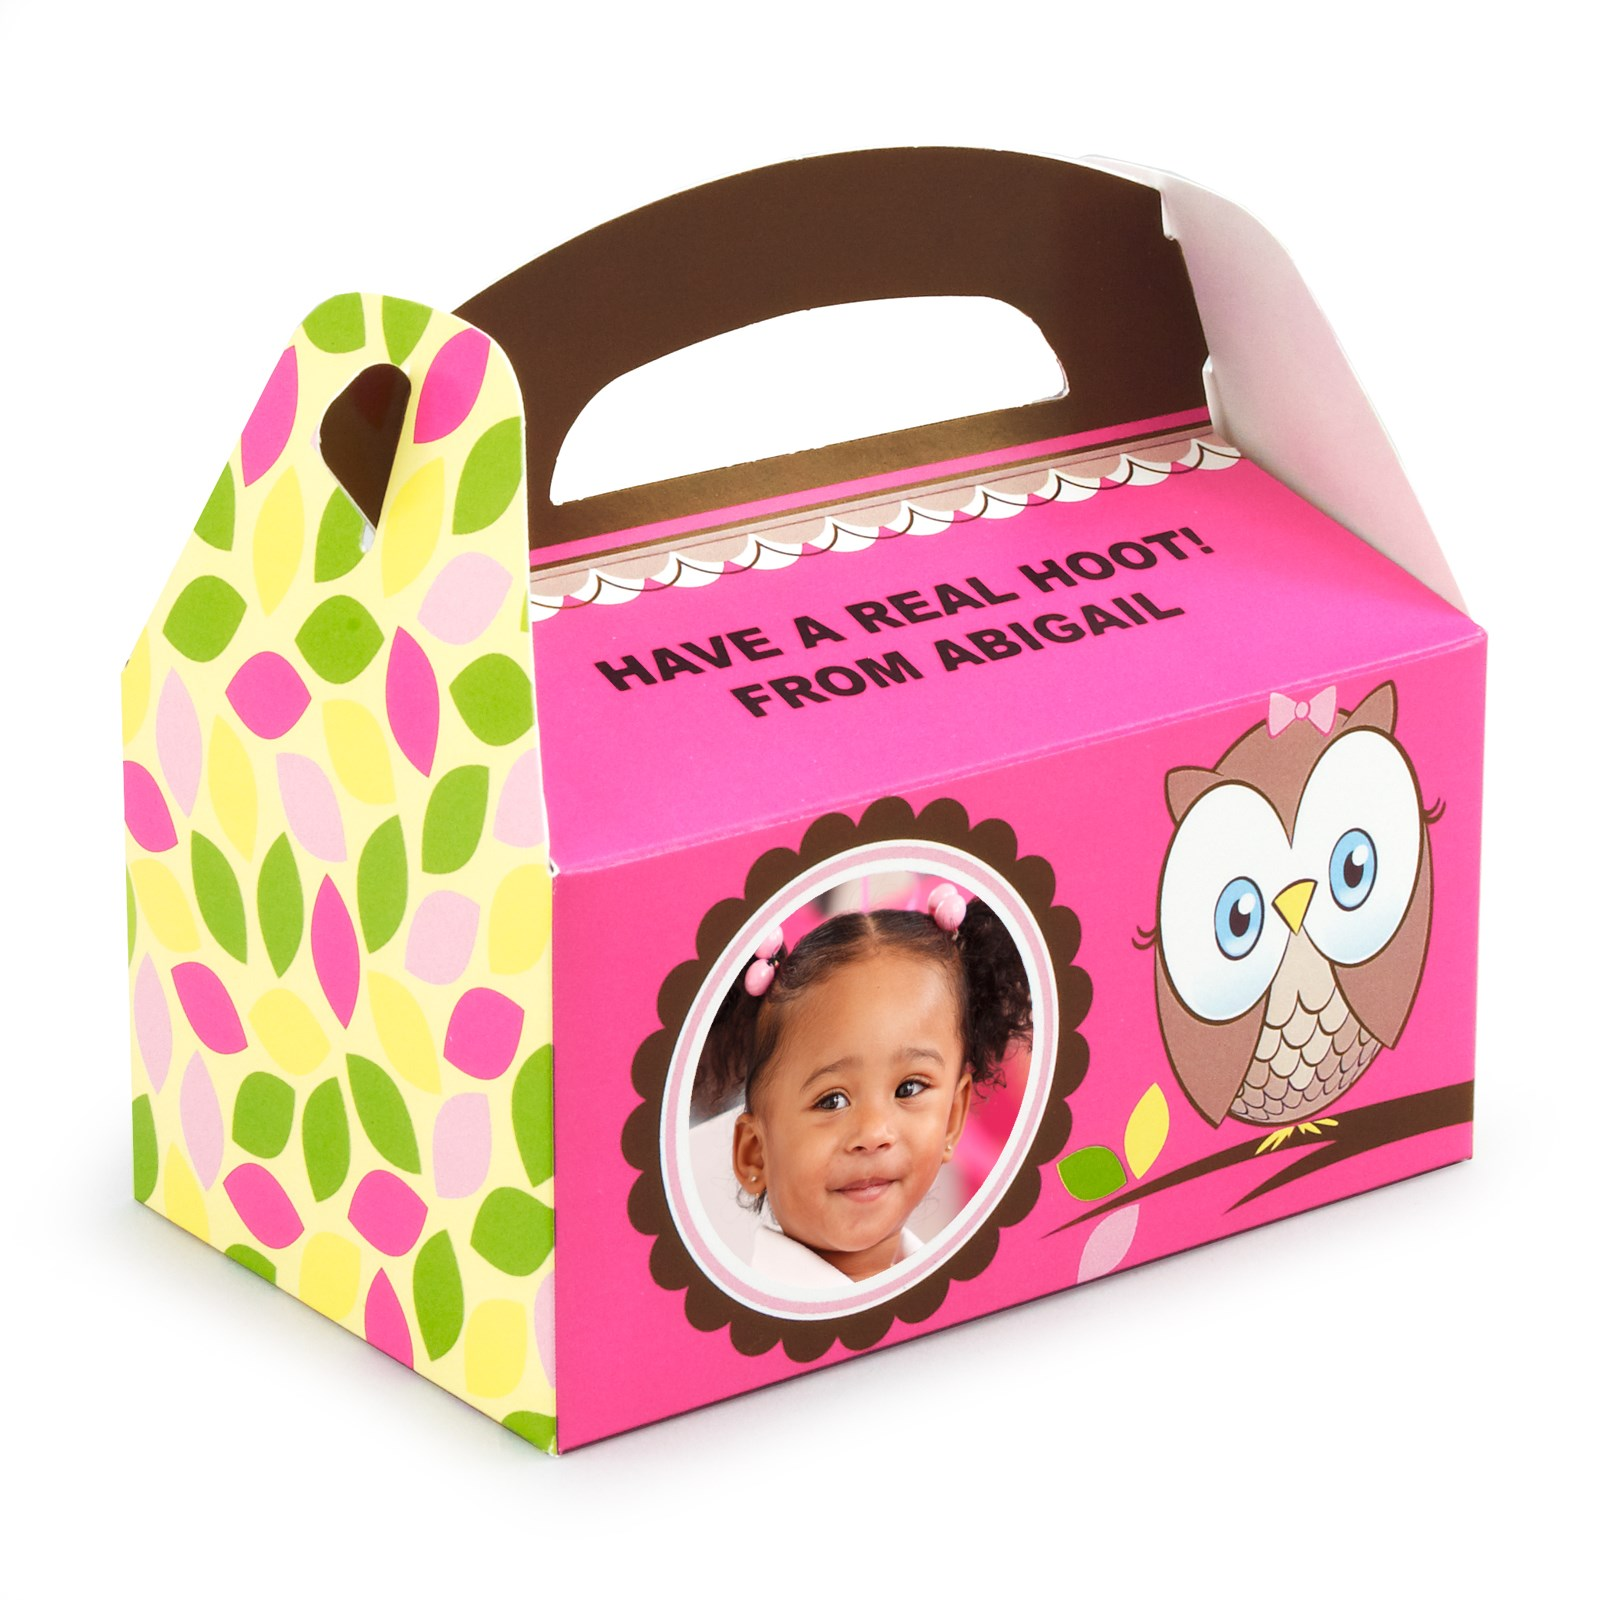 Personalized Party Favor Boxes Birthday : Look whoo s pink personalized empty favor boxes